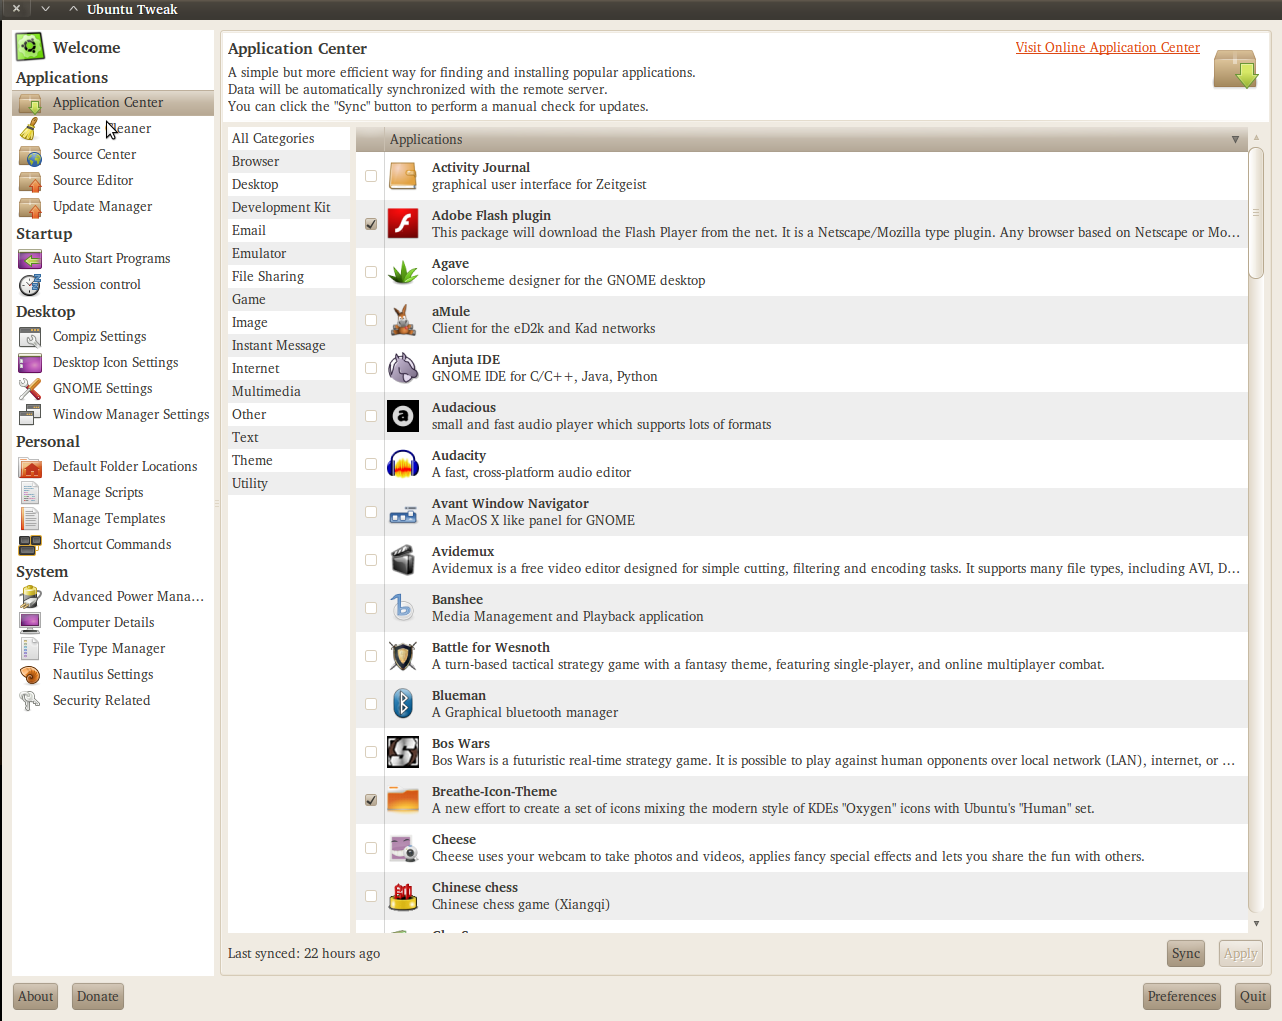 Must Have Applications on Ubuntu for Web Developers